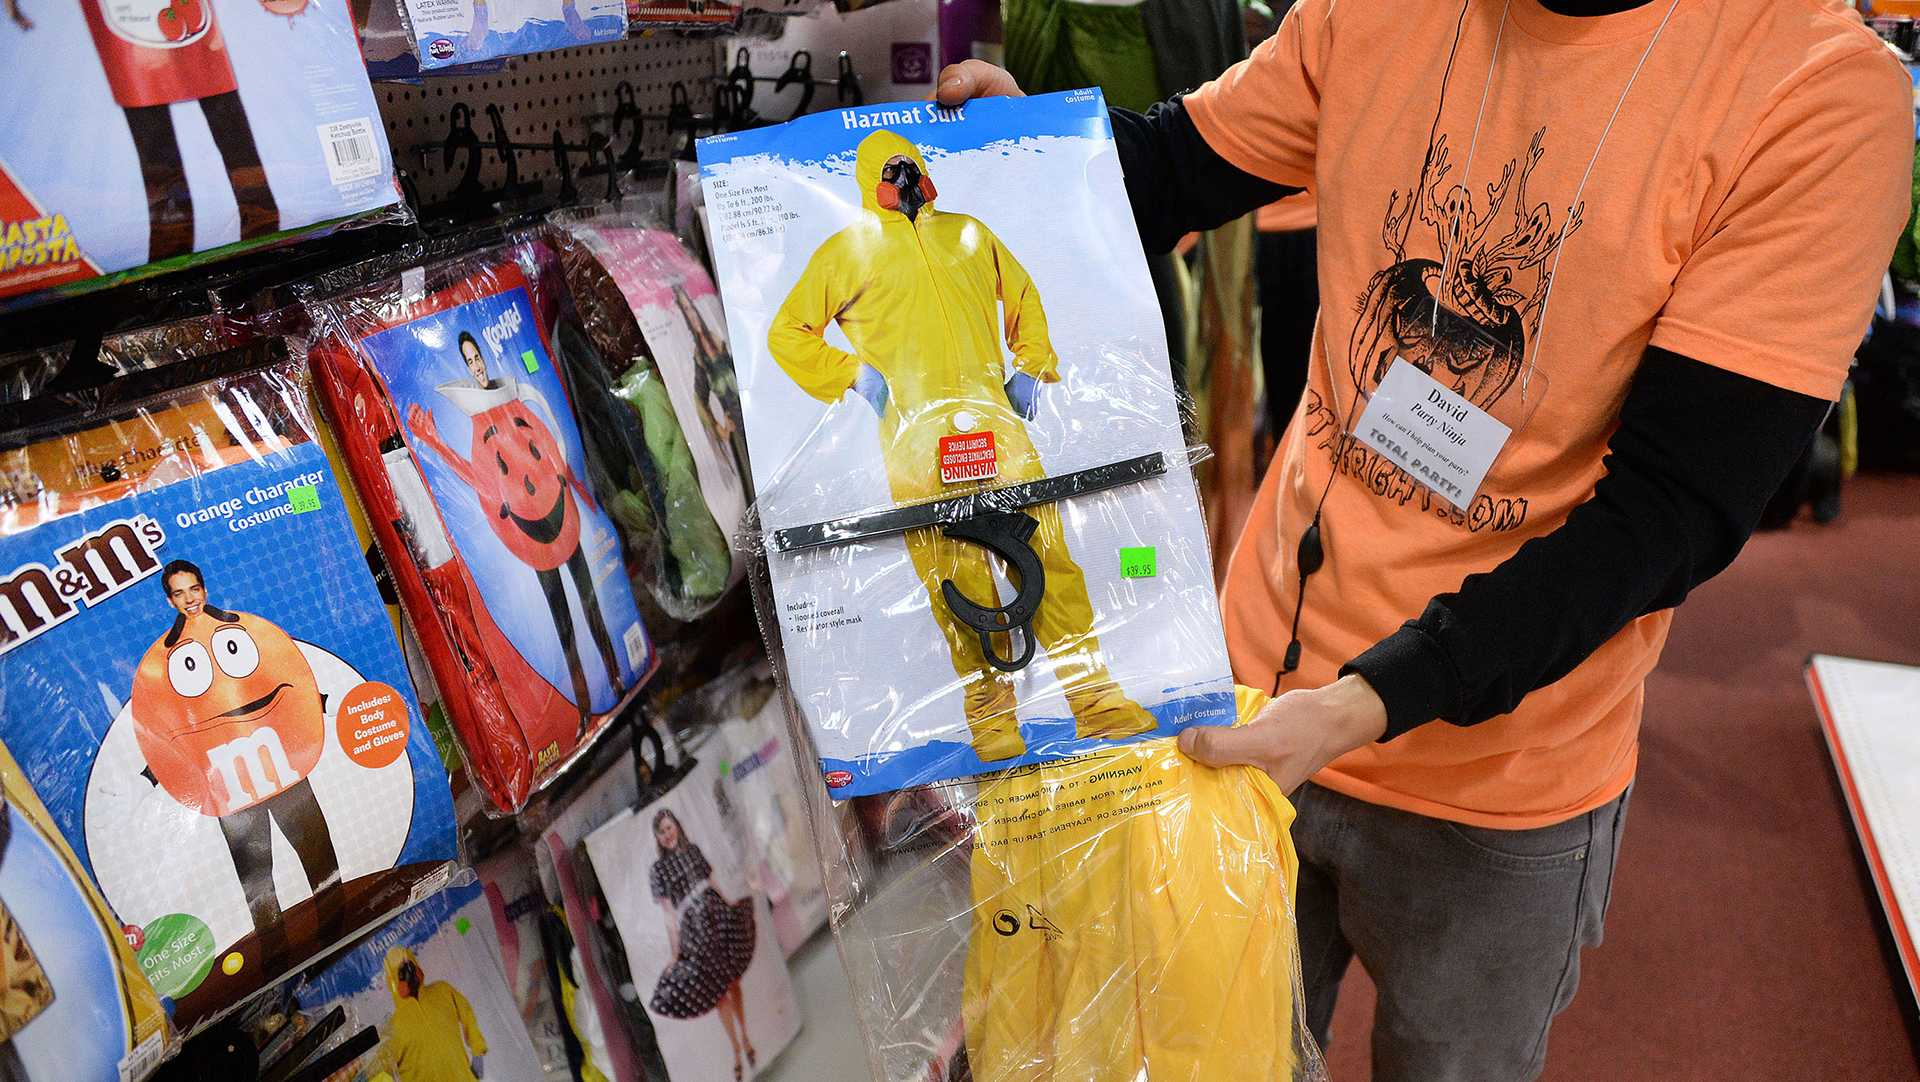 Costume stores are selling out of Hazmat suits as customers have Ebola on their minds this Halloween in Arlington, Va., on Friday, Oct. 17, 2014. (Olivier Douliery/Abaca Press/MCT)